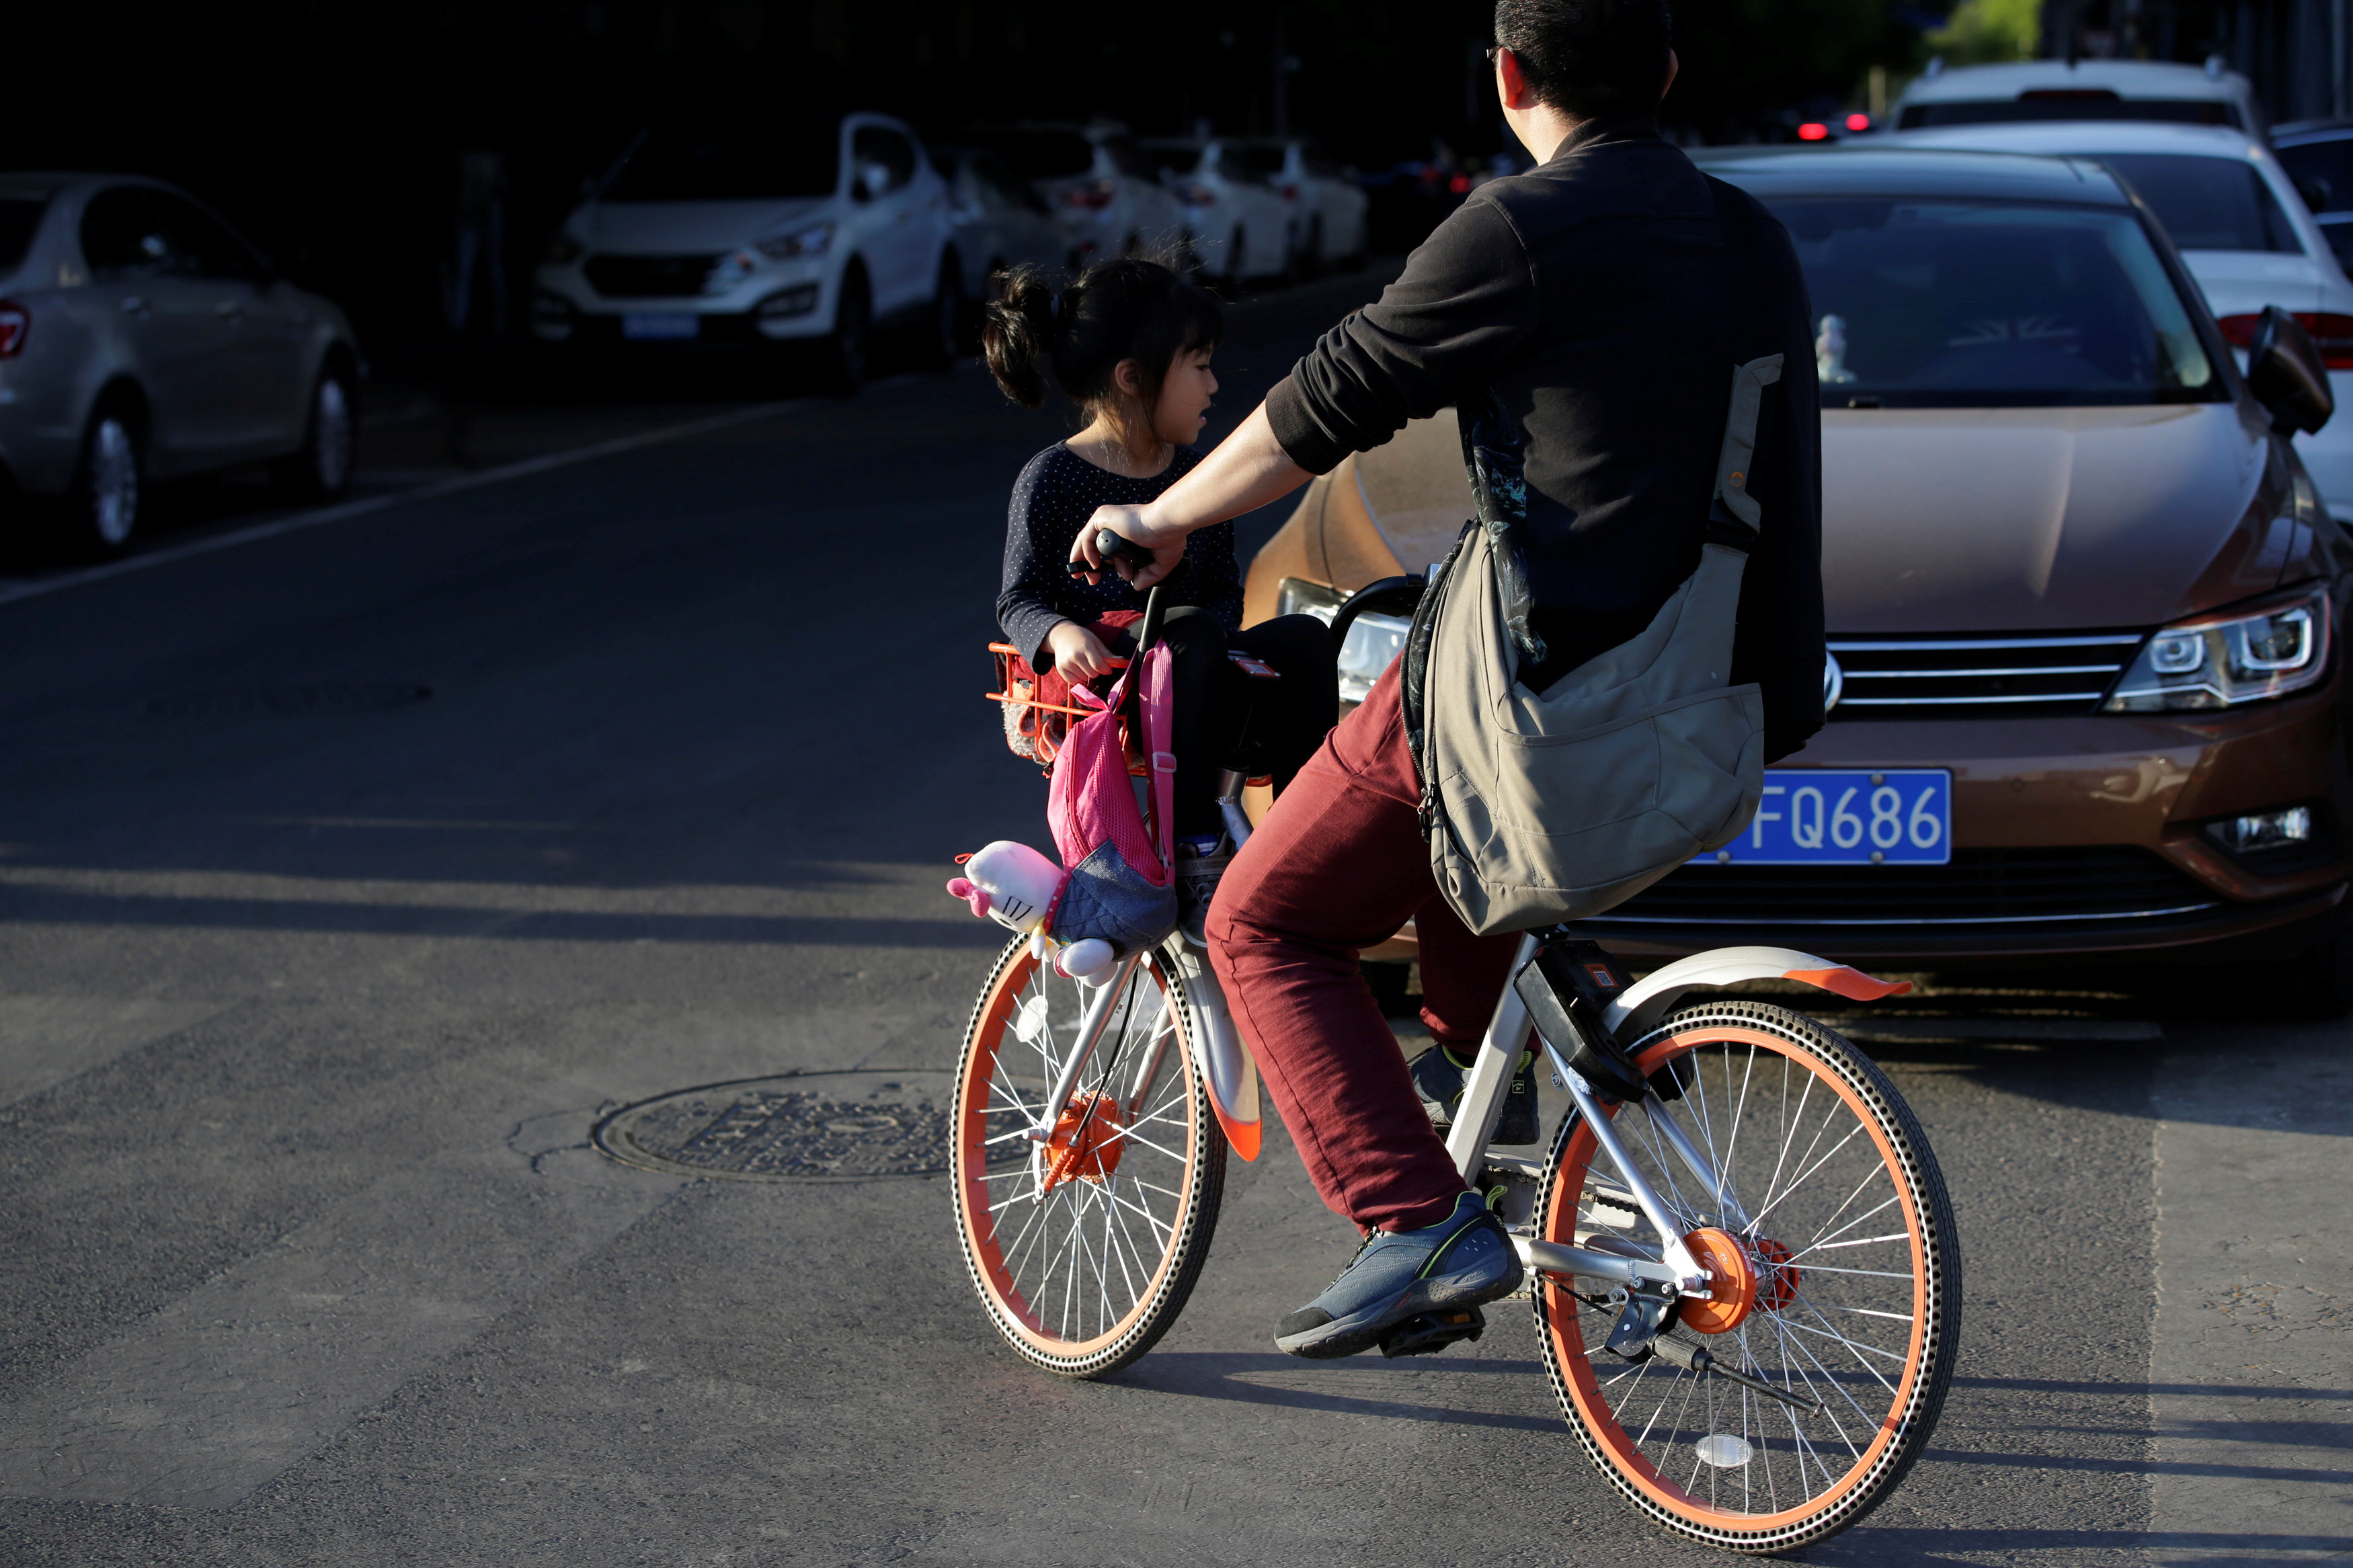 A man rides a Mobike's shared bike to carry a girl in bicycle basket on a road in Beijing, China April 21, 2017. Picture taken April 21, 2017. REUTERS/Jason Lee - RTS16B80